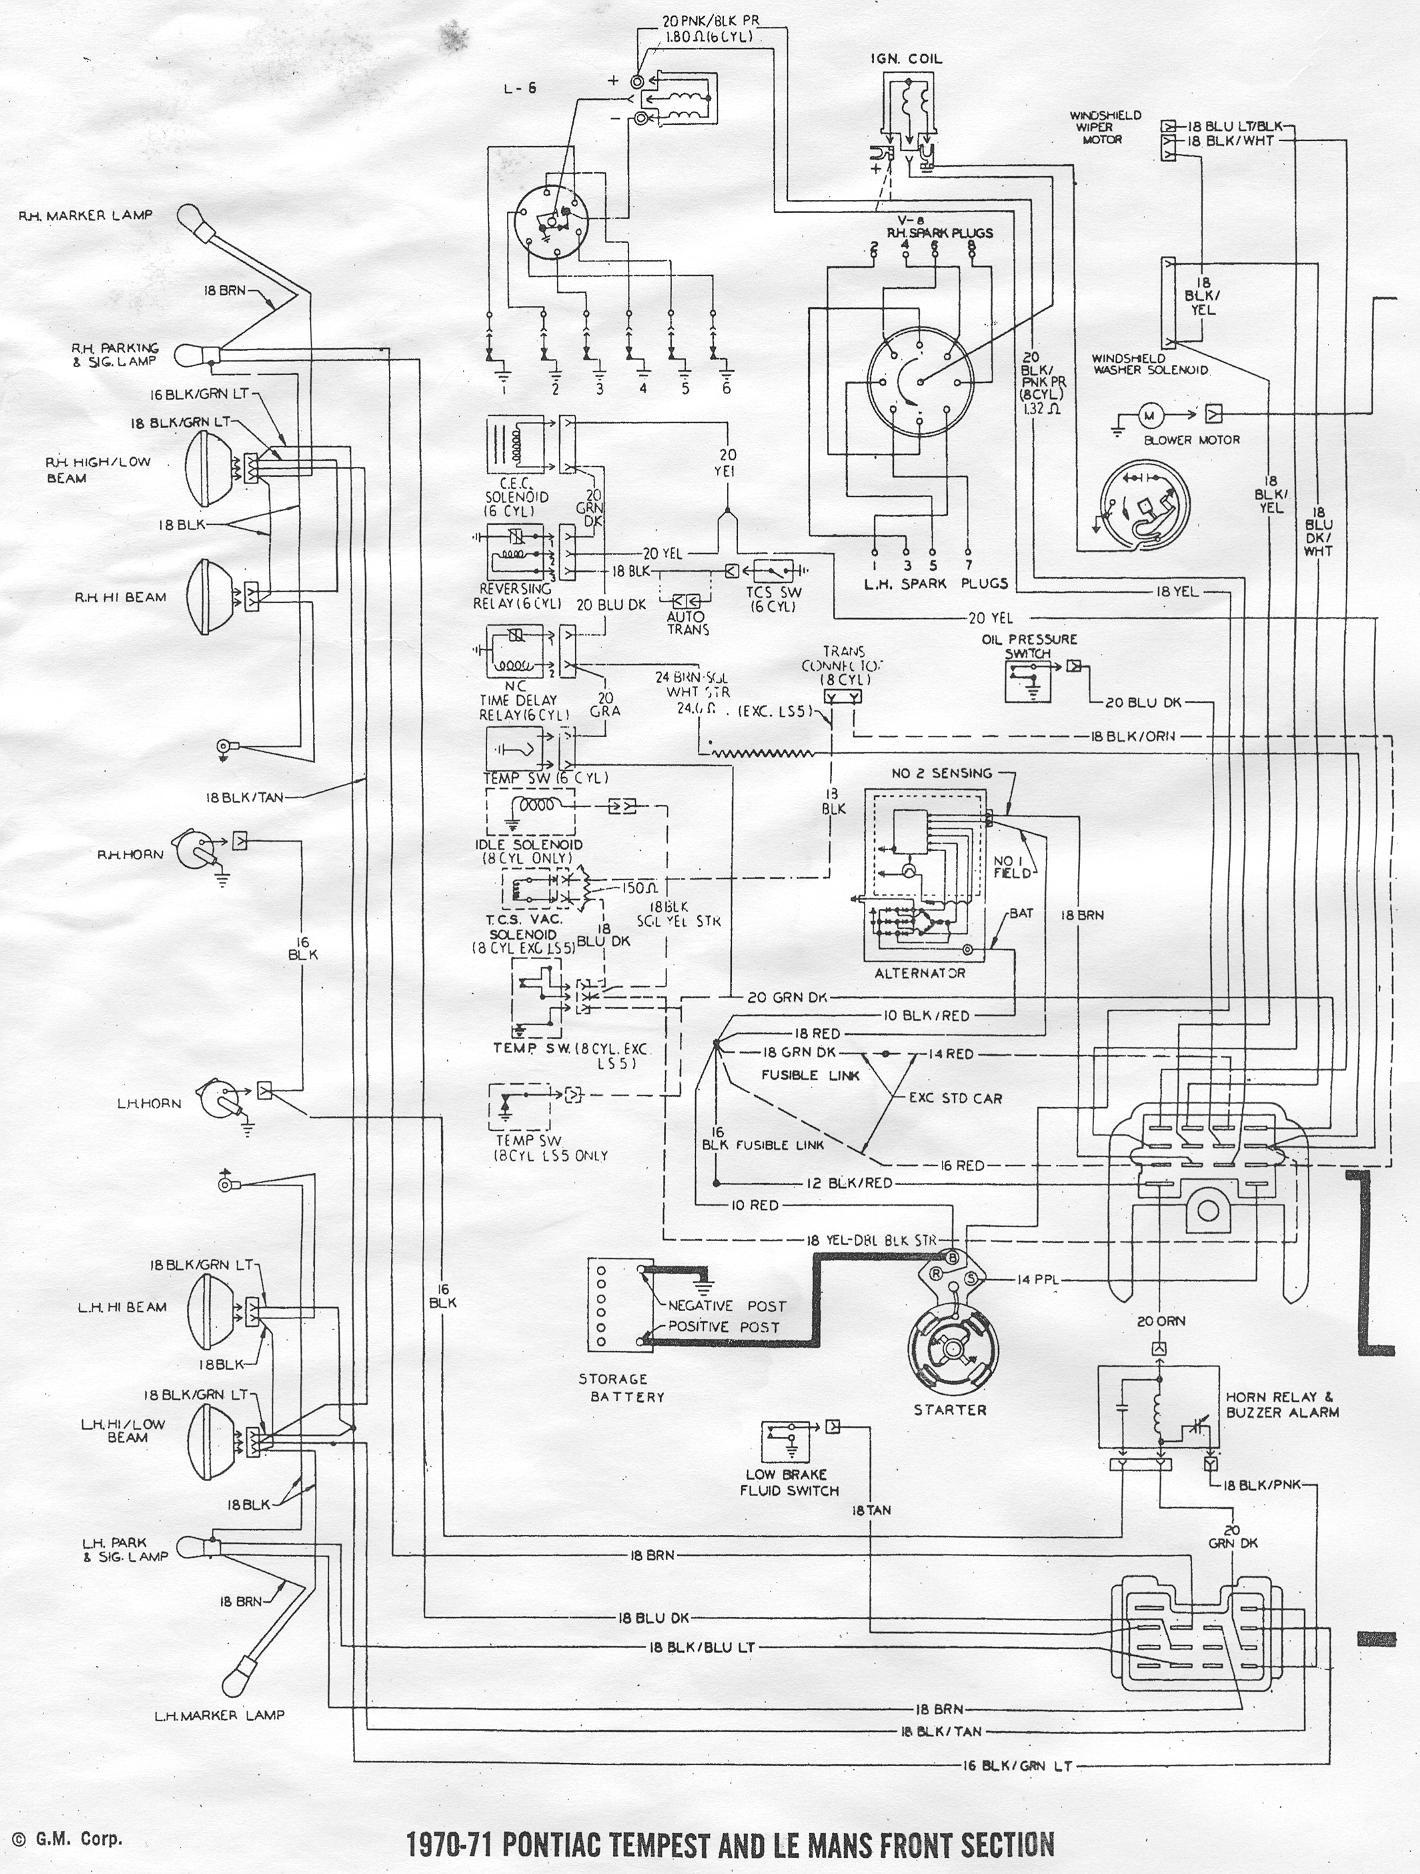 69 camaro wiring diagram wiring diagram and hernes 1969 mustang headlight switch wiring diagram diagrams and